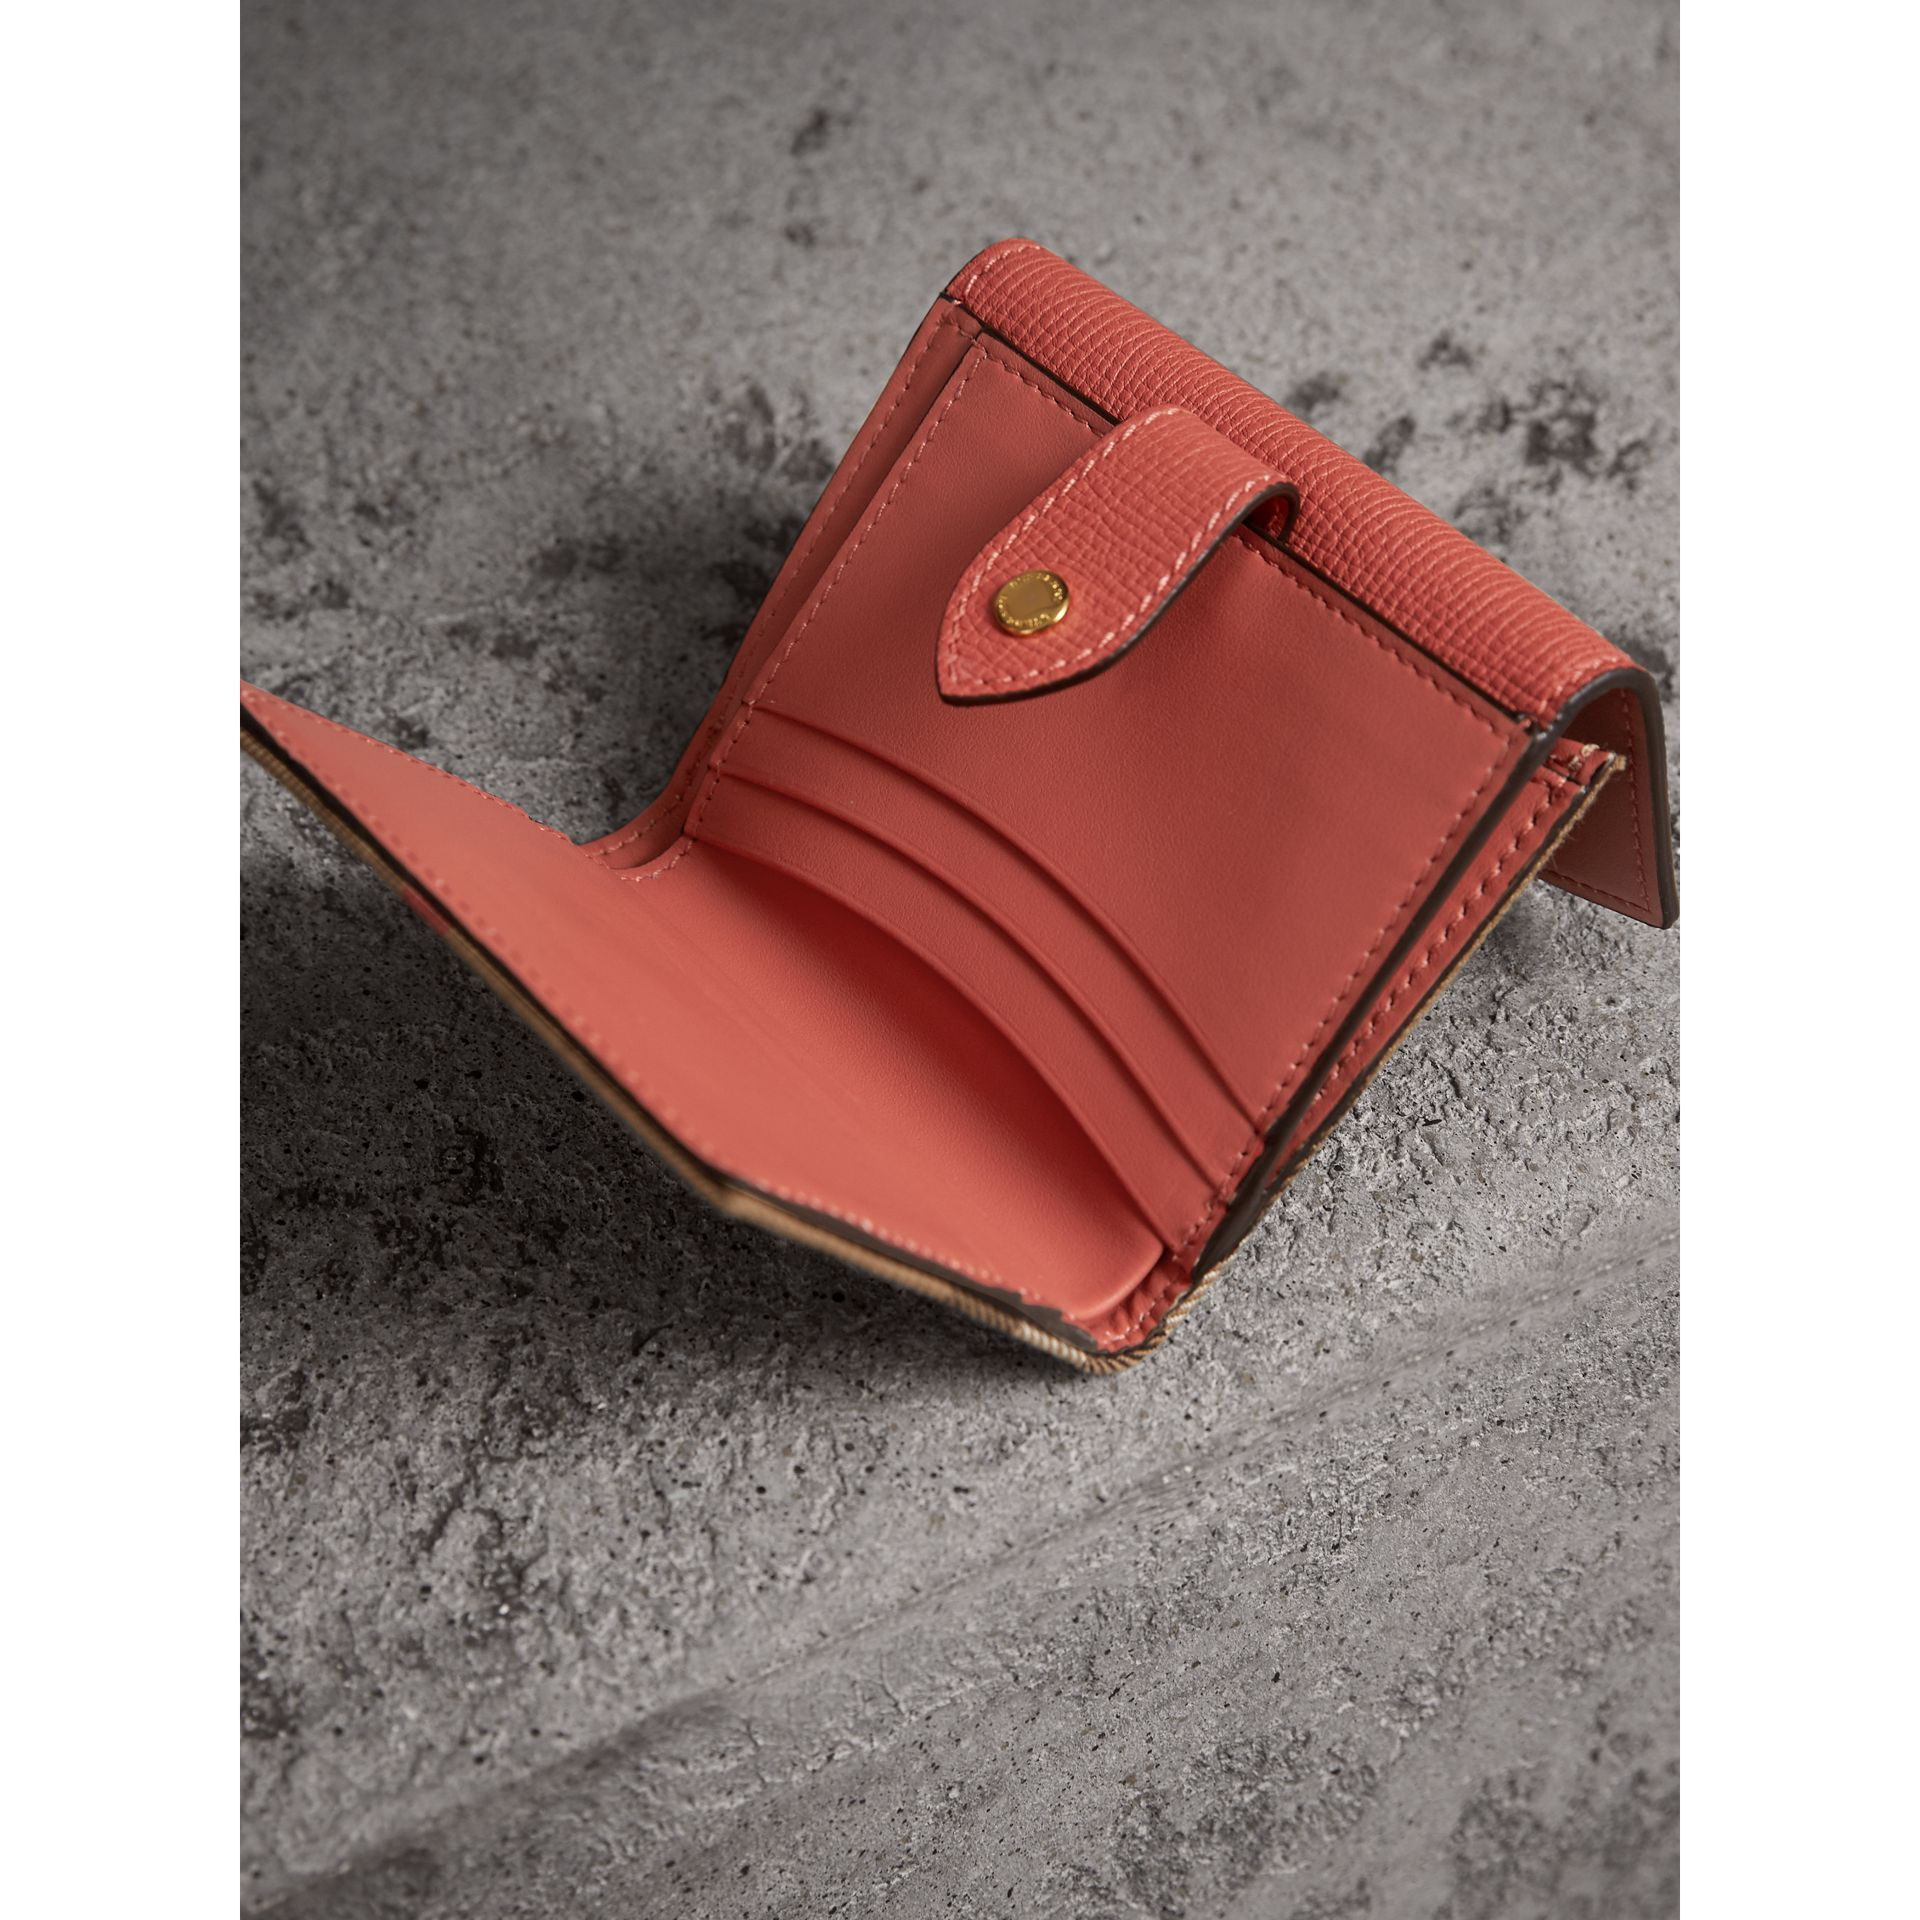 House Check and Leather Wallet in Cinnamon Red - Women | Burberry Hong Kong - gallery image 3